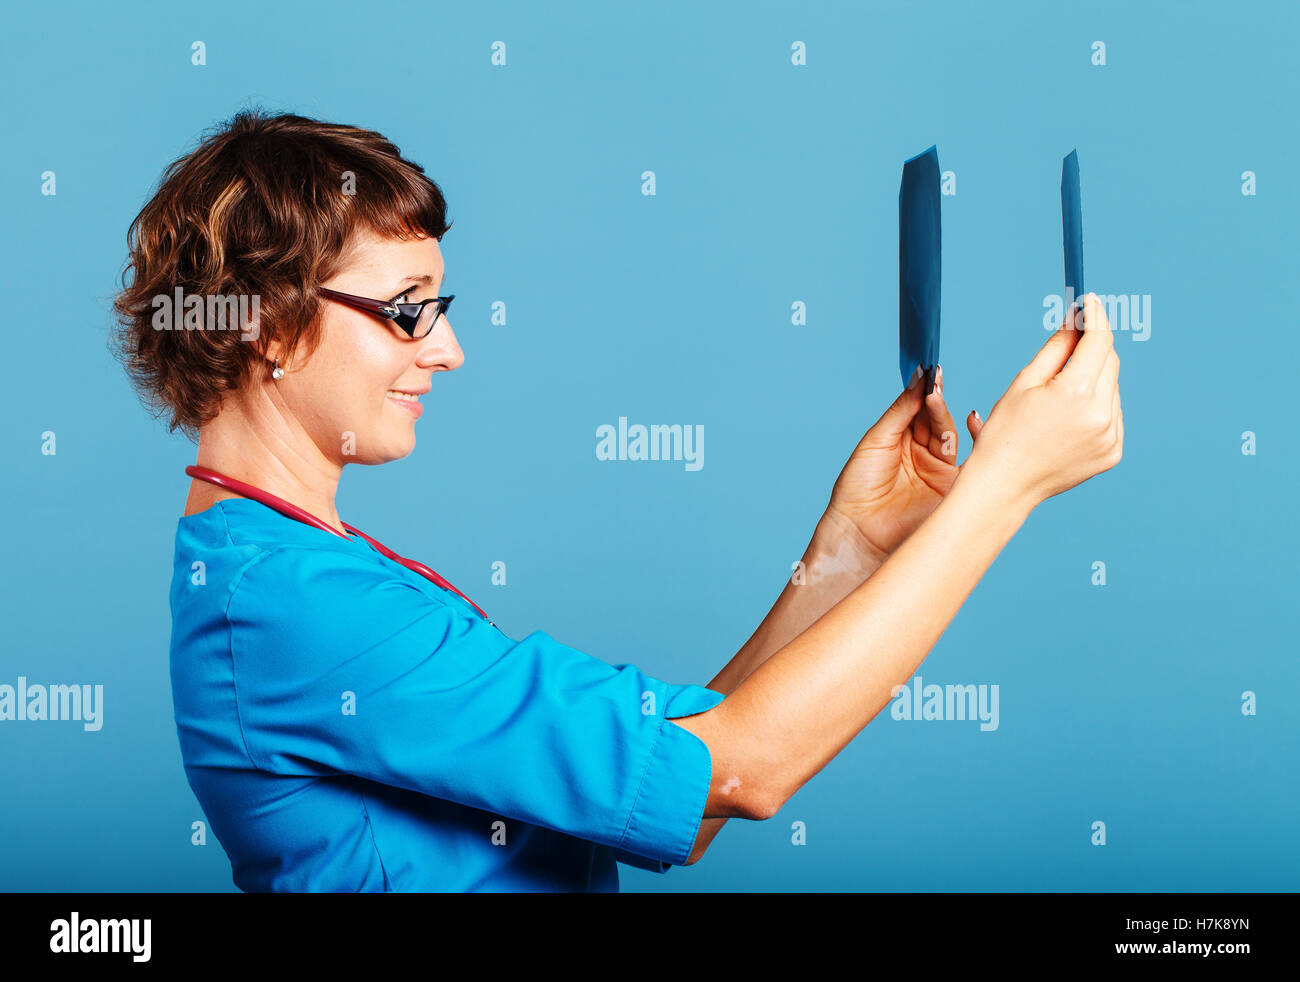 Doctor looking X-ray images of patients, shot in studio on a blue background - Stock Image